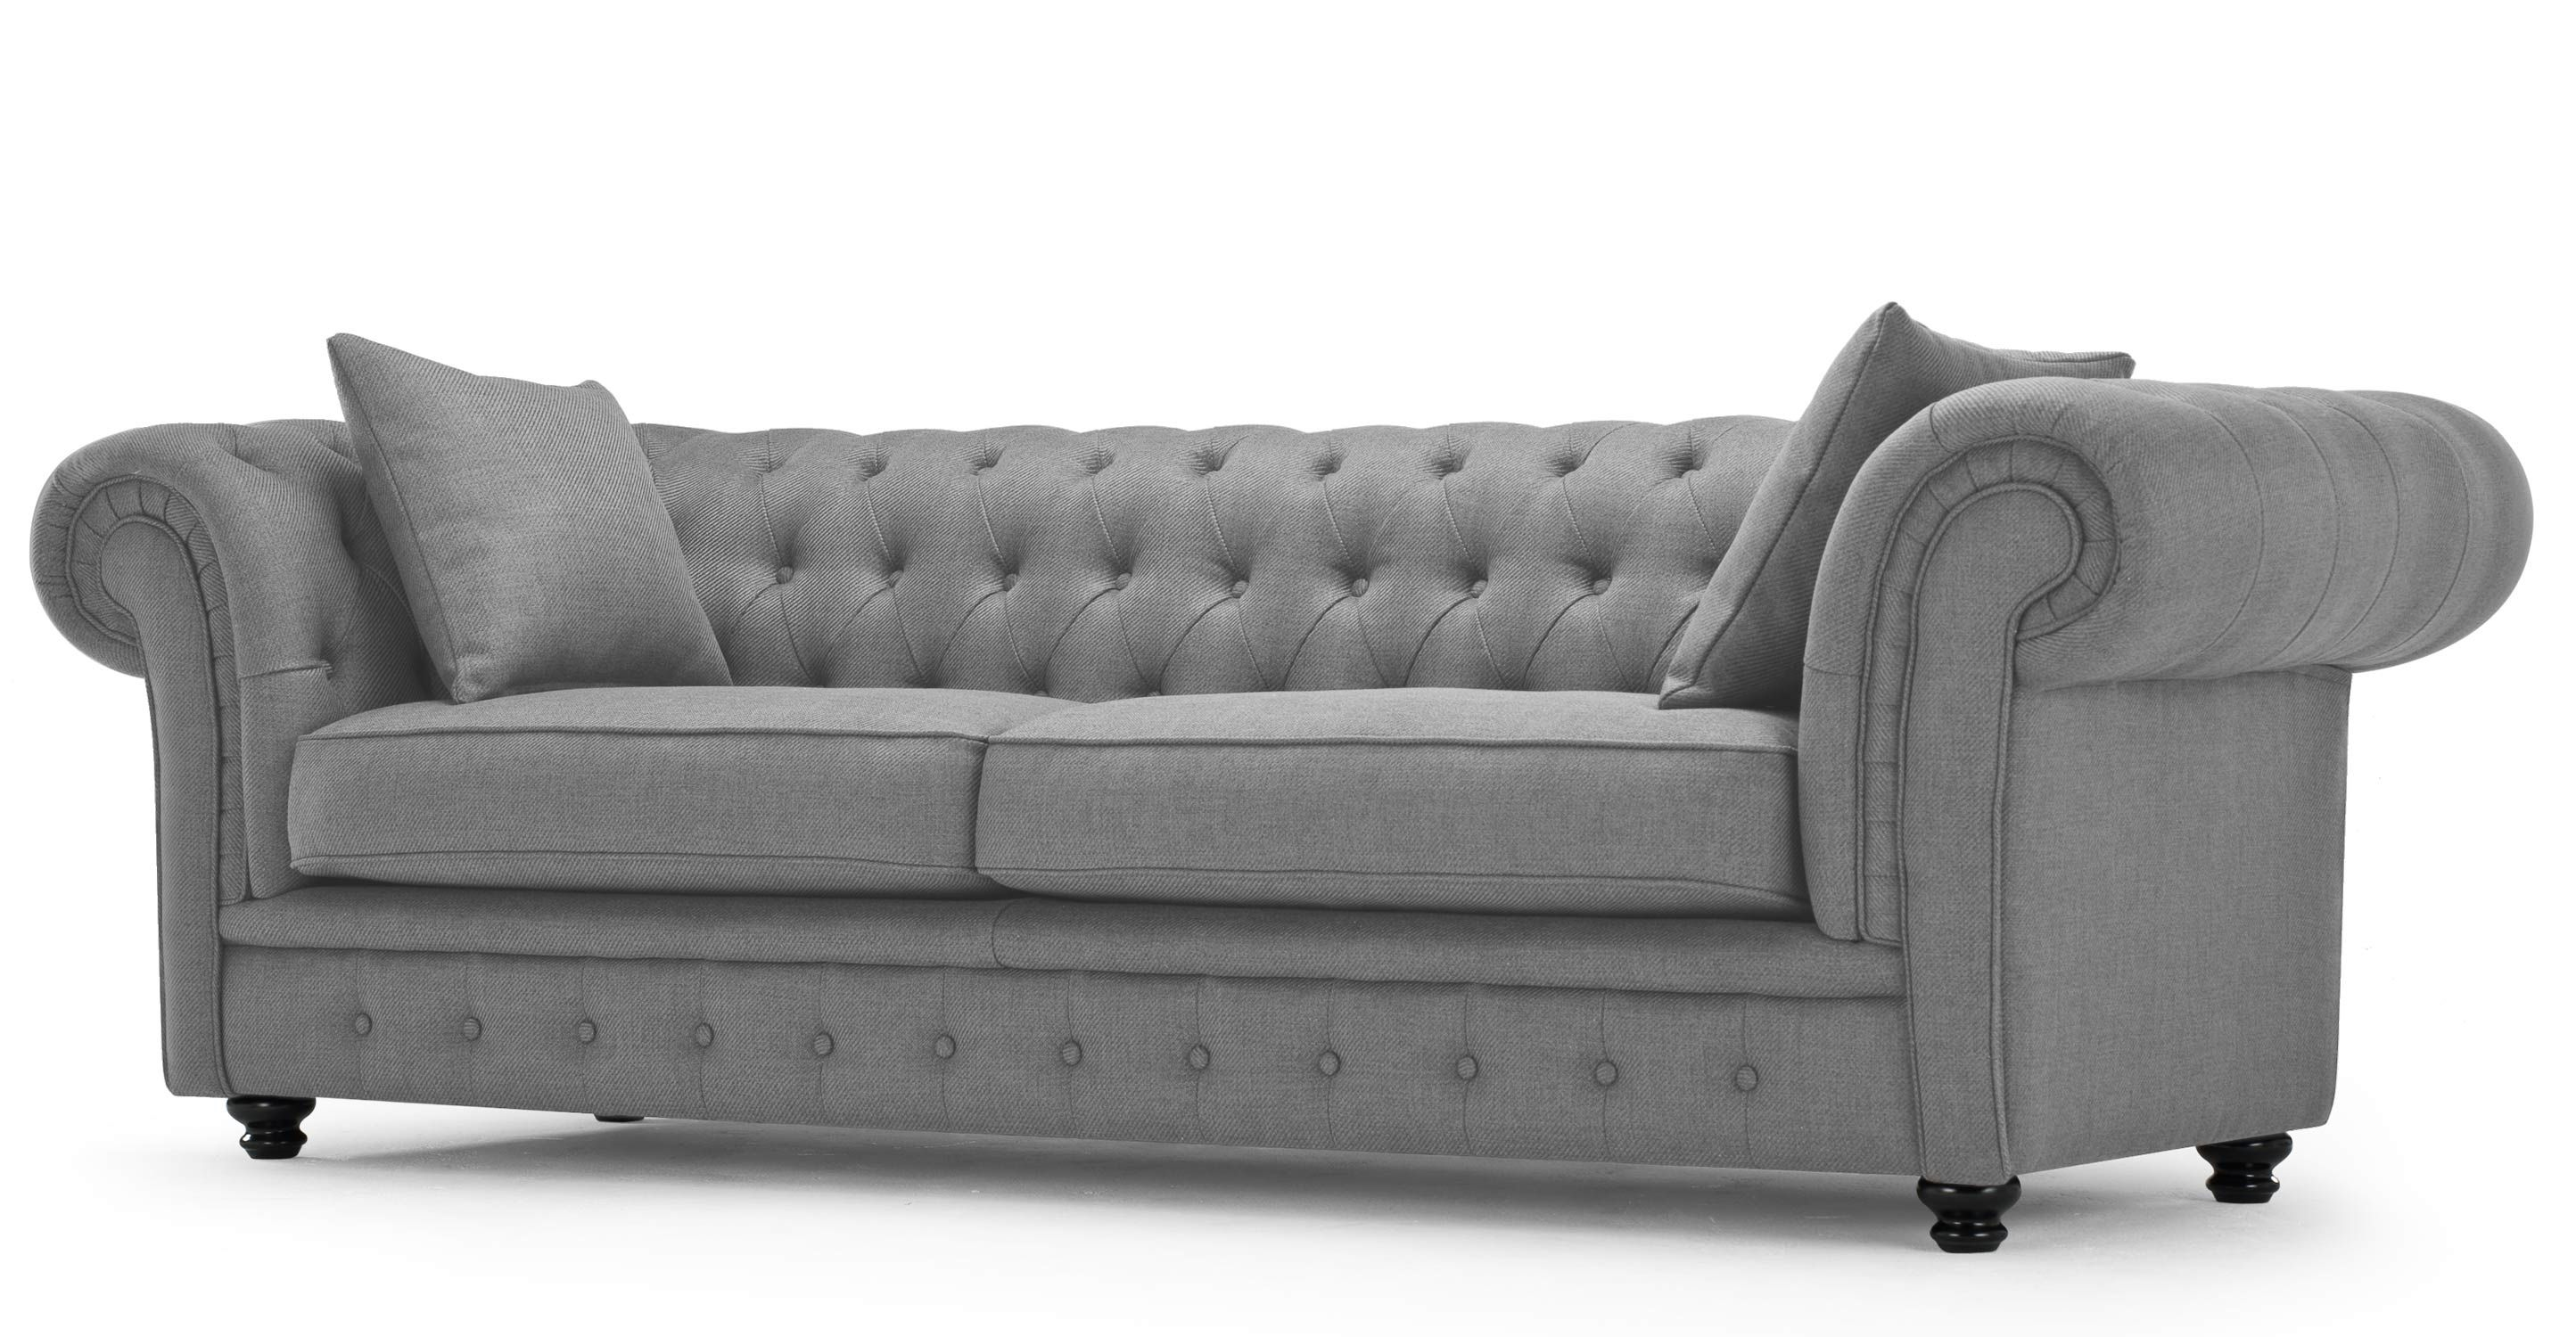 Pin By Sofacouchs On Sofas Couches Fabric Chesterfield Sofa